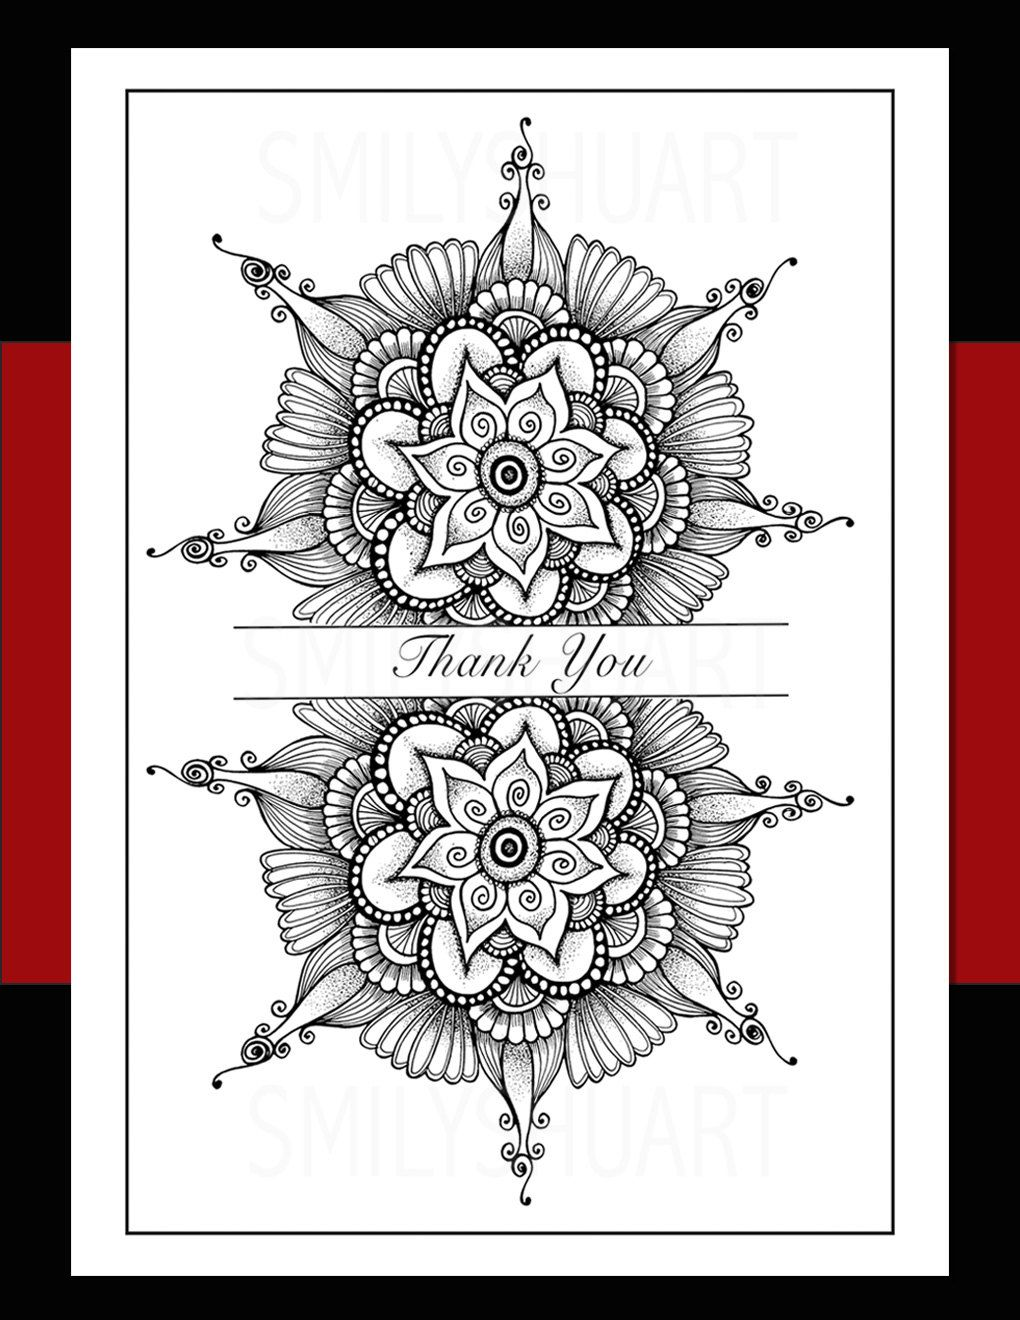 Thanksgiving mandala coloring pages - Printable Thank You Cards Diy Thanksgiving Or Holiday Gift Zentangle Mandala Coloring Page Wall Art Tattoo Henna Design Christmas Cards